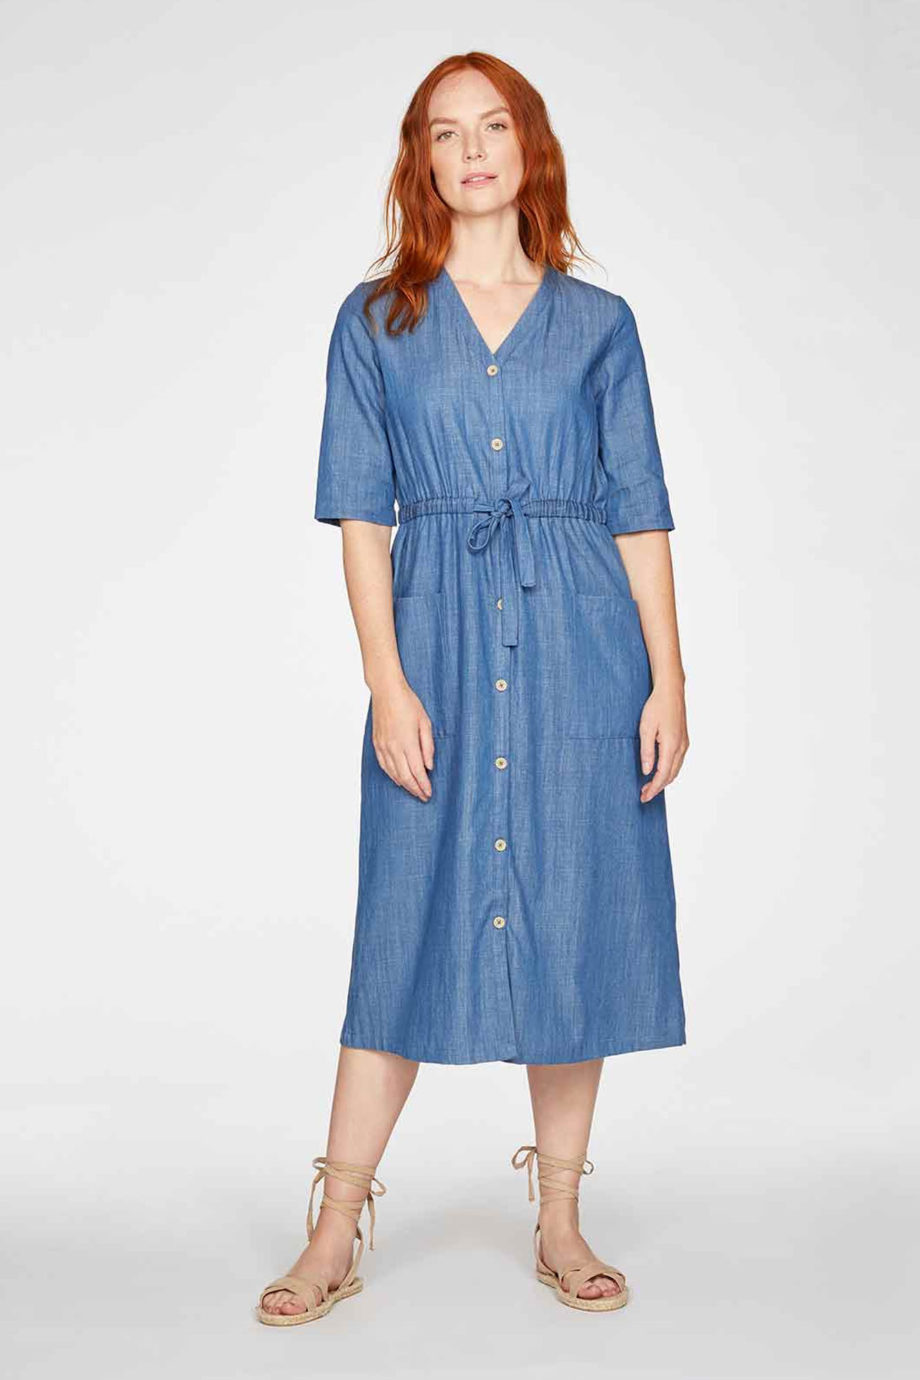 THOUGHT-CLOTHING-vestido-ESTHER